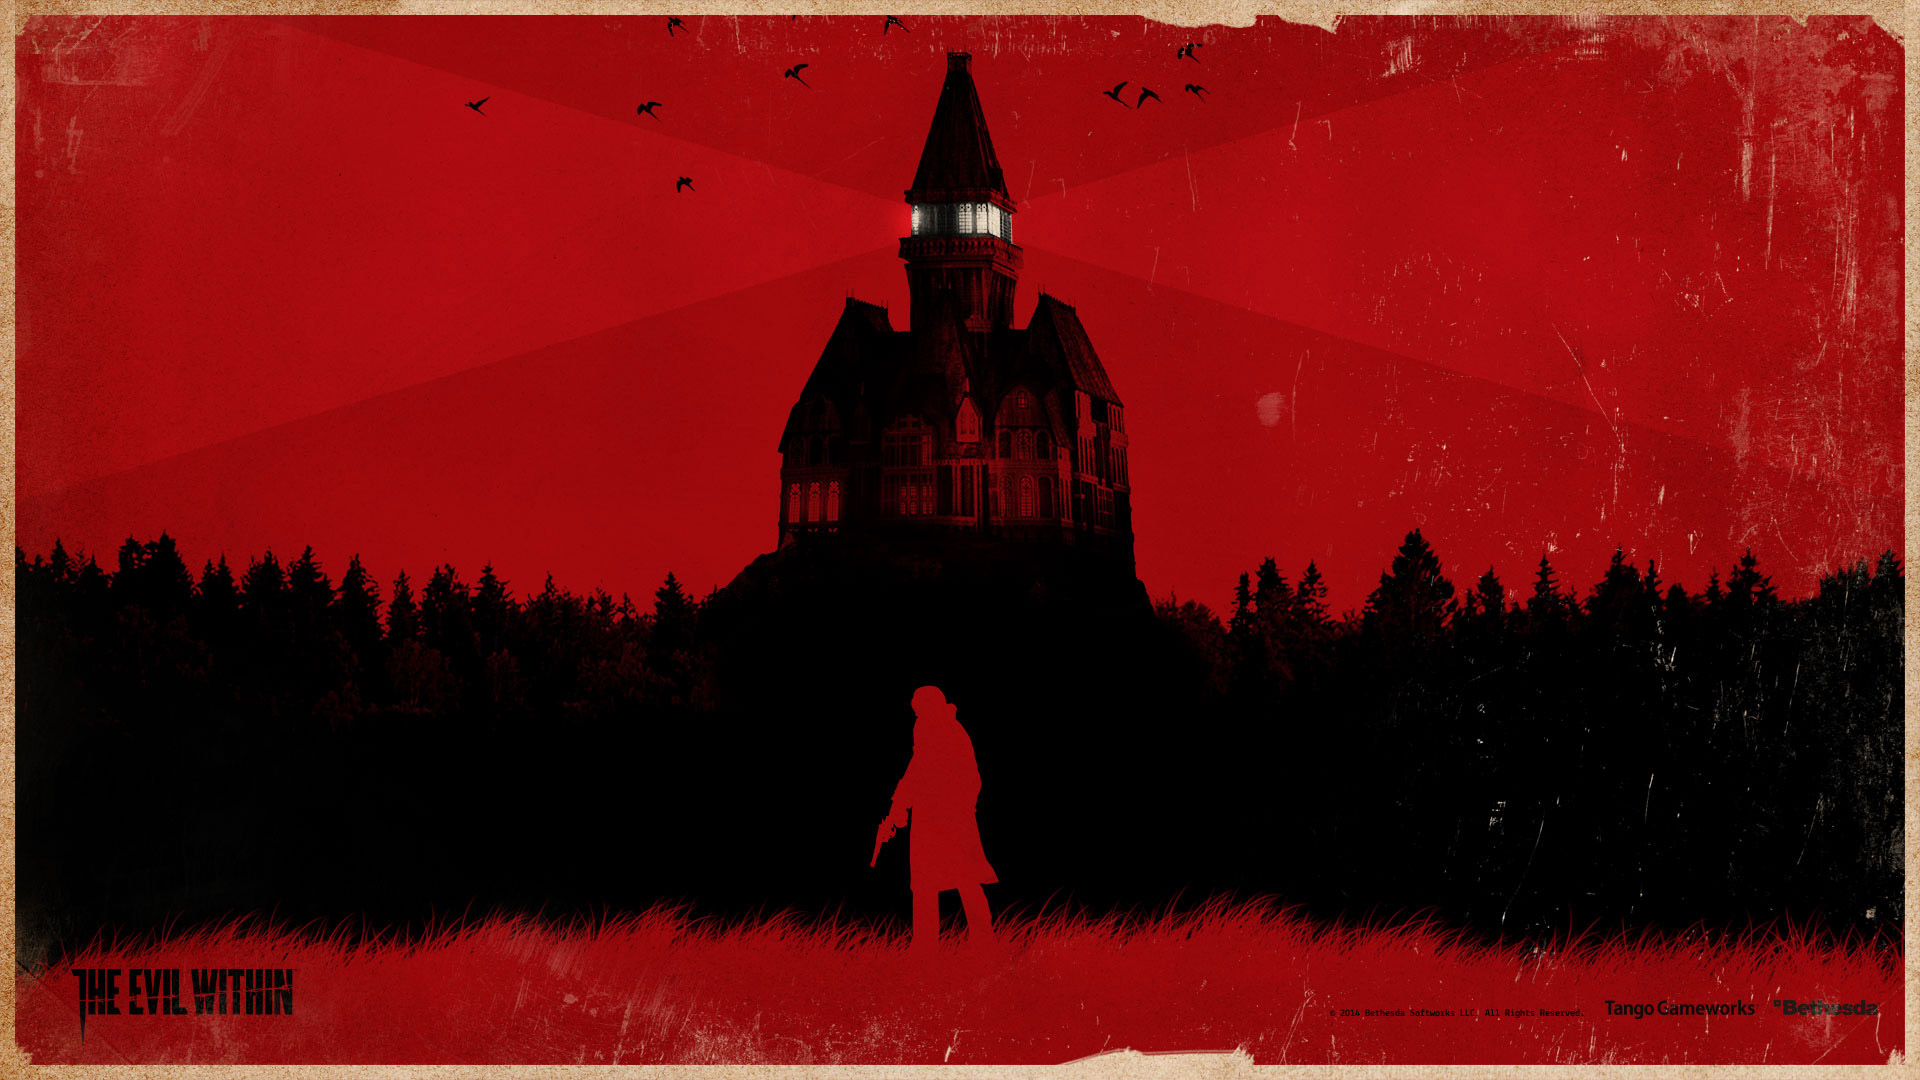 The Evil Within Wallpaper 6